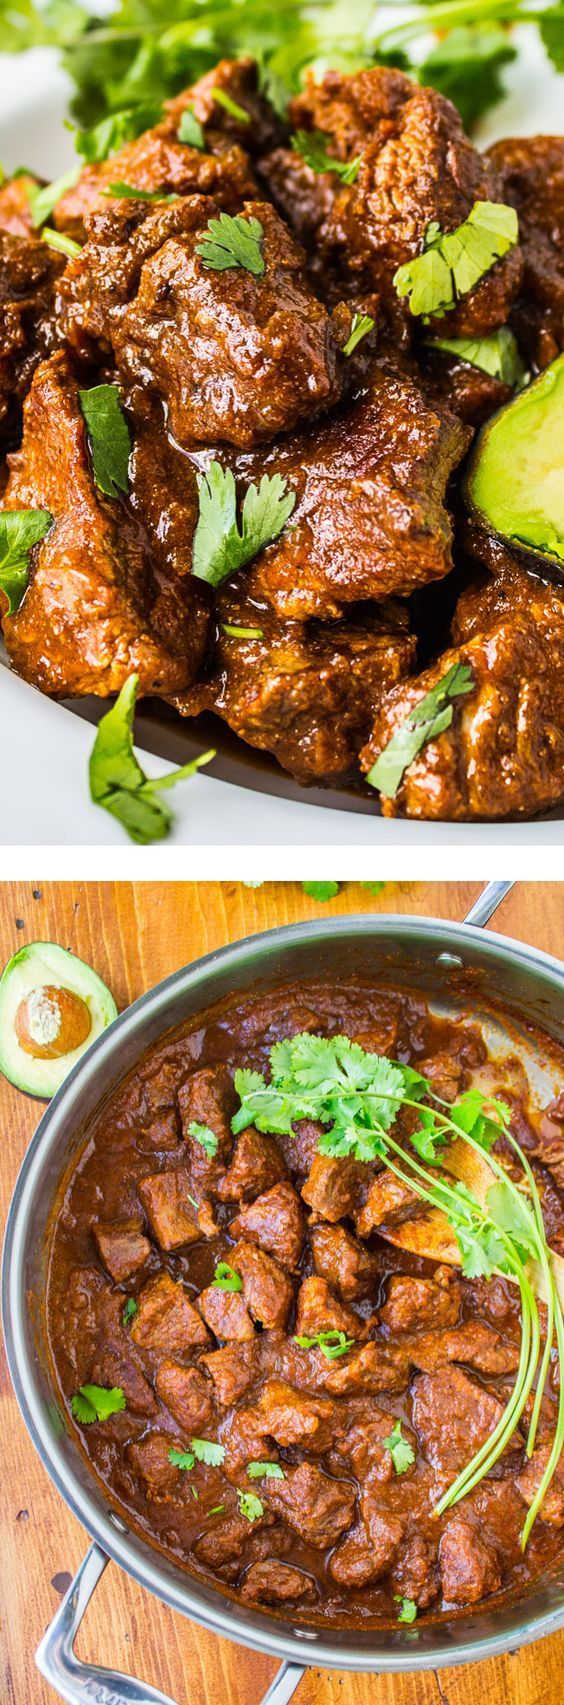 Traditional Tejano Carne Guisada (Braised Beef for Tacos) from The Food Charlatan // This recipe is SO easy with ingredients you probably have on hand. The best taco meat ever.